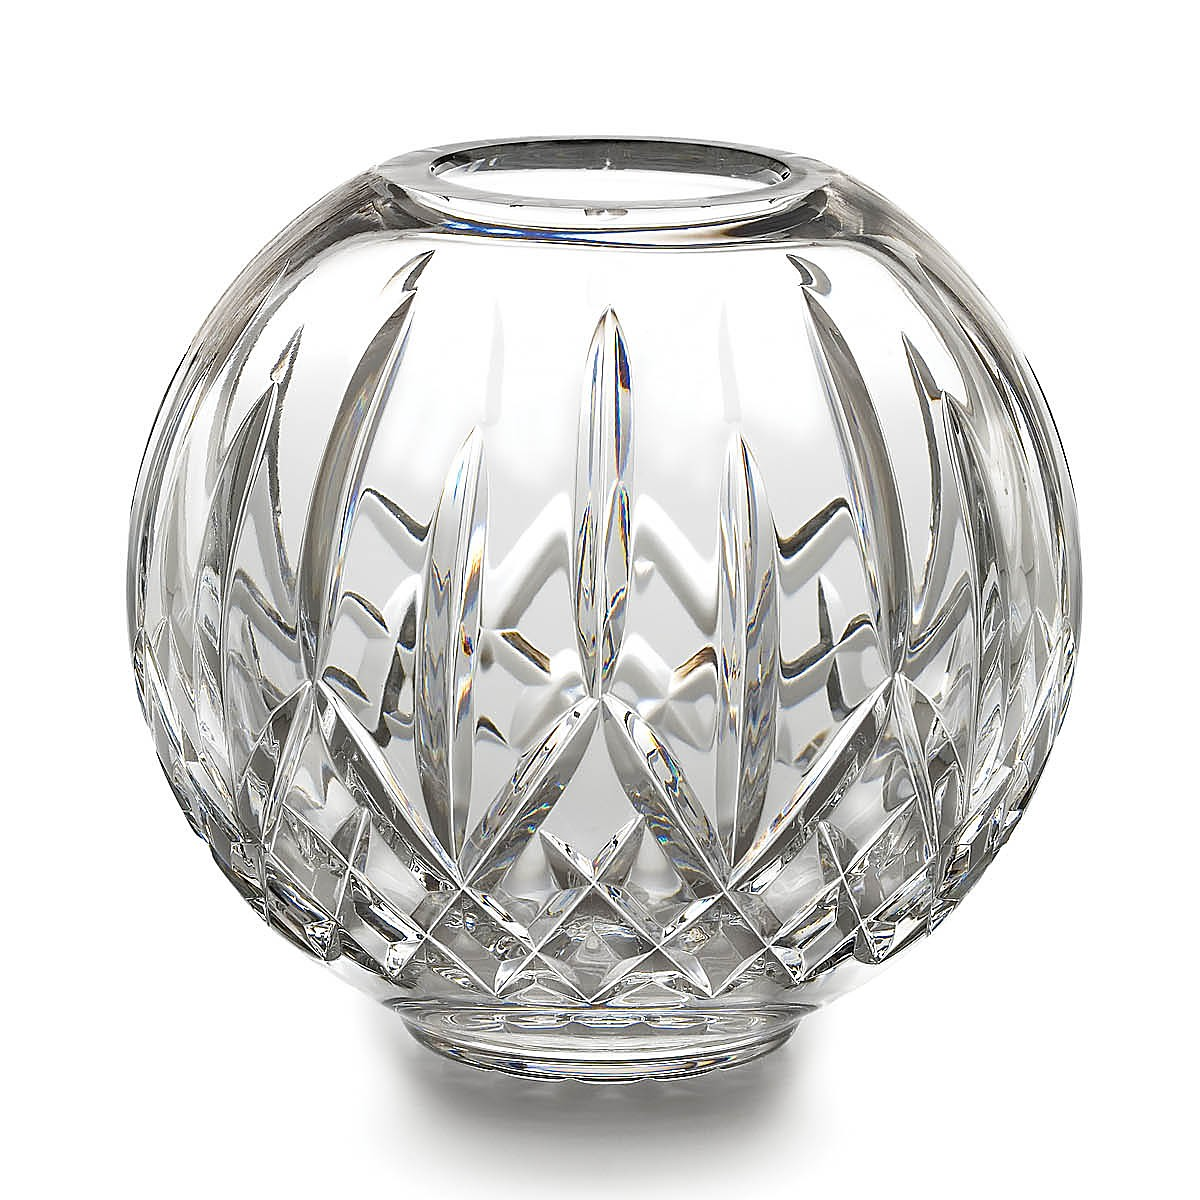 Charming waterford lismore with lismore goblet design glass waterford lismore